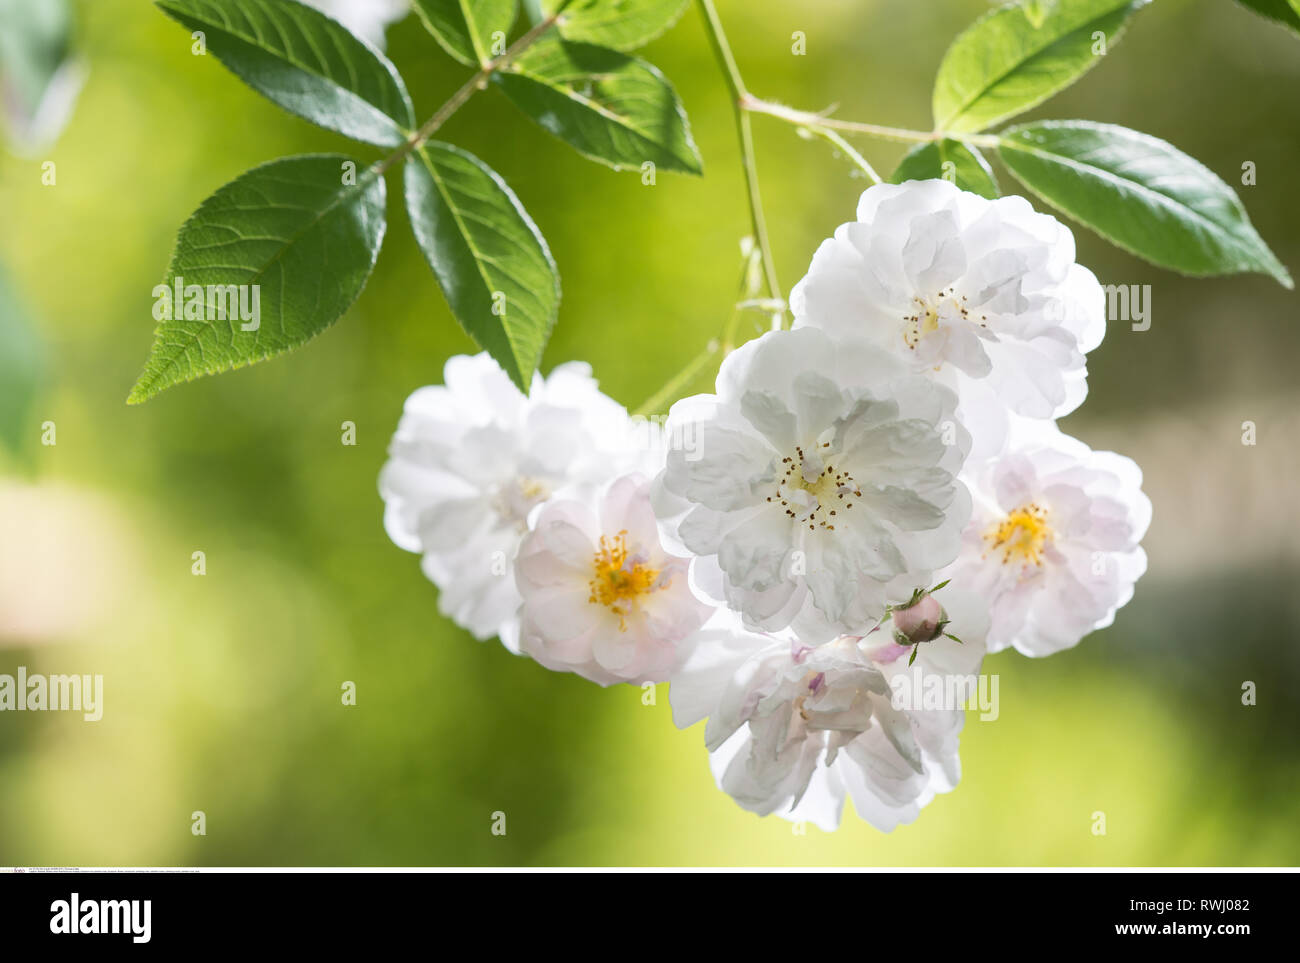 botany, blossom of a rambler rose, Caution! For Greetingcard-Use / Postcard-Use In German Speaking Countries Certain Restrictions May Apply - Stock Image